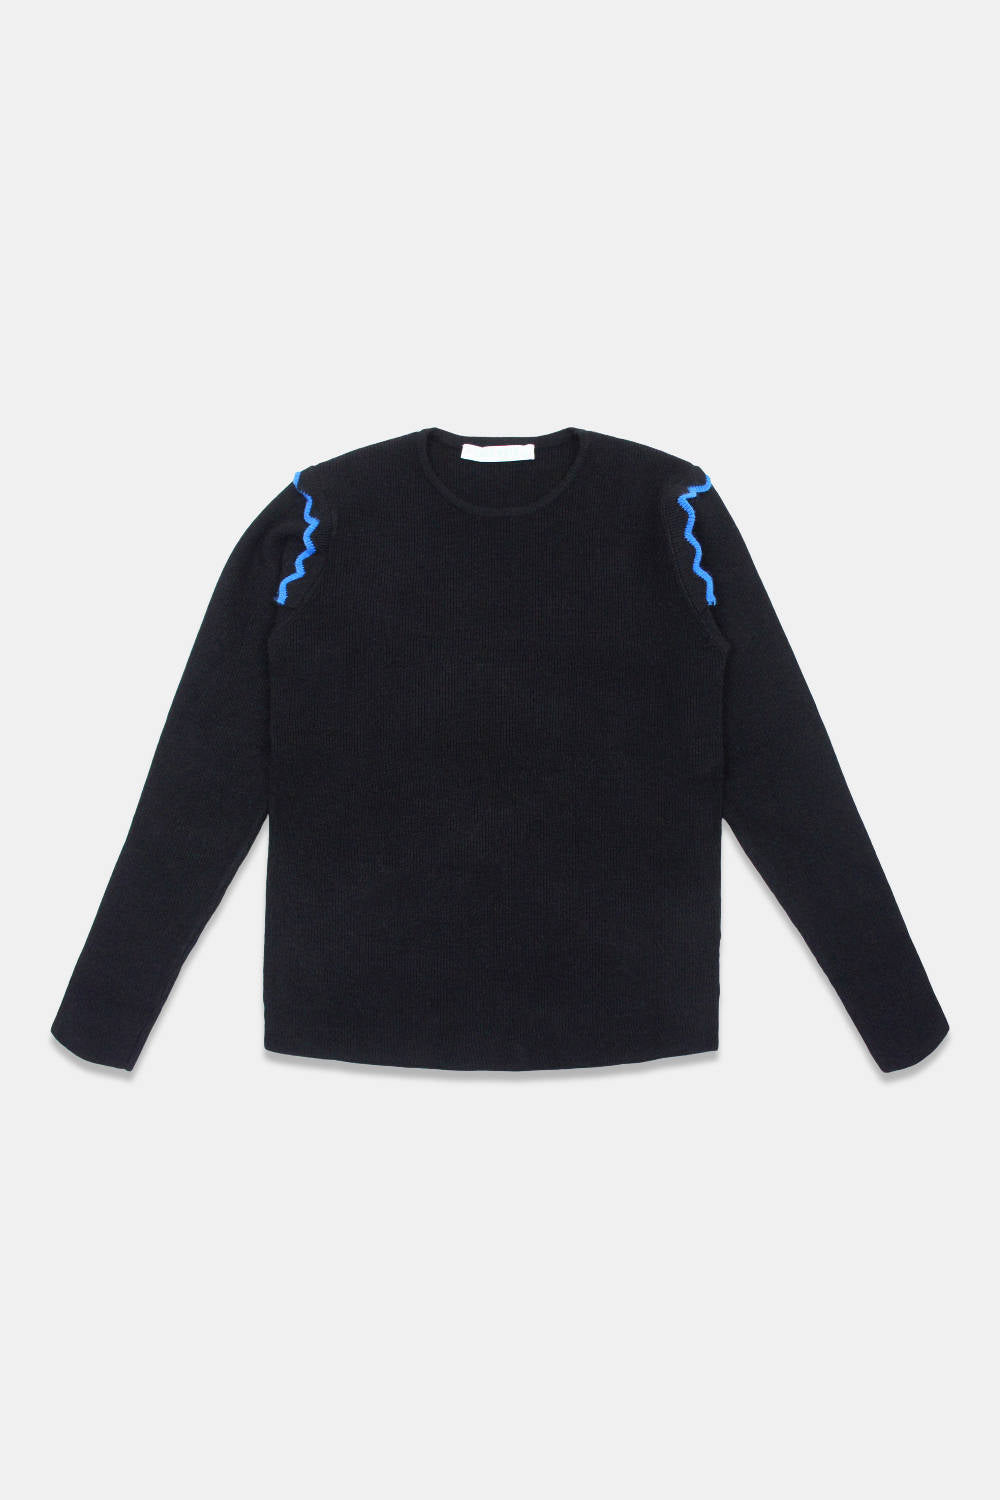 Take Note Black Faso Sweater